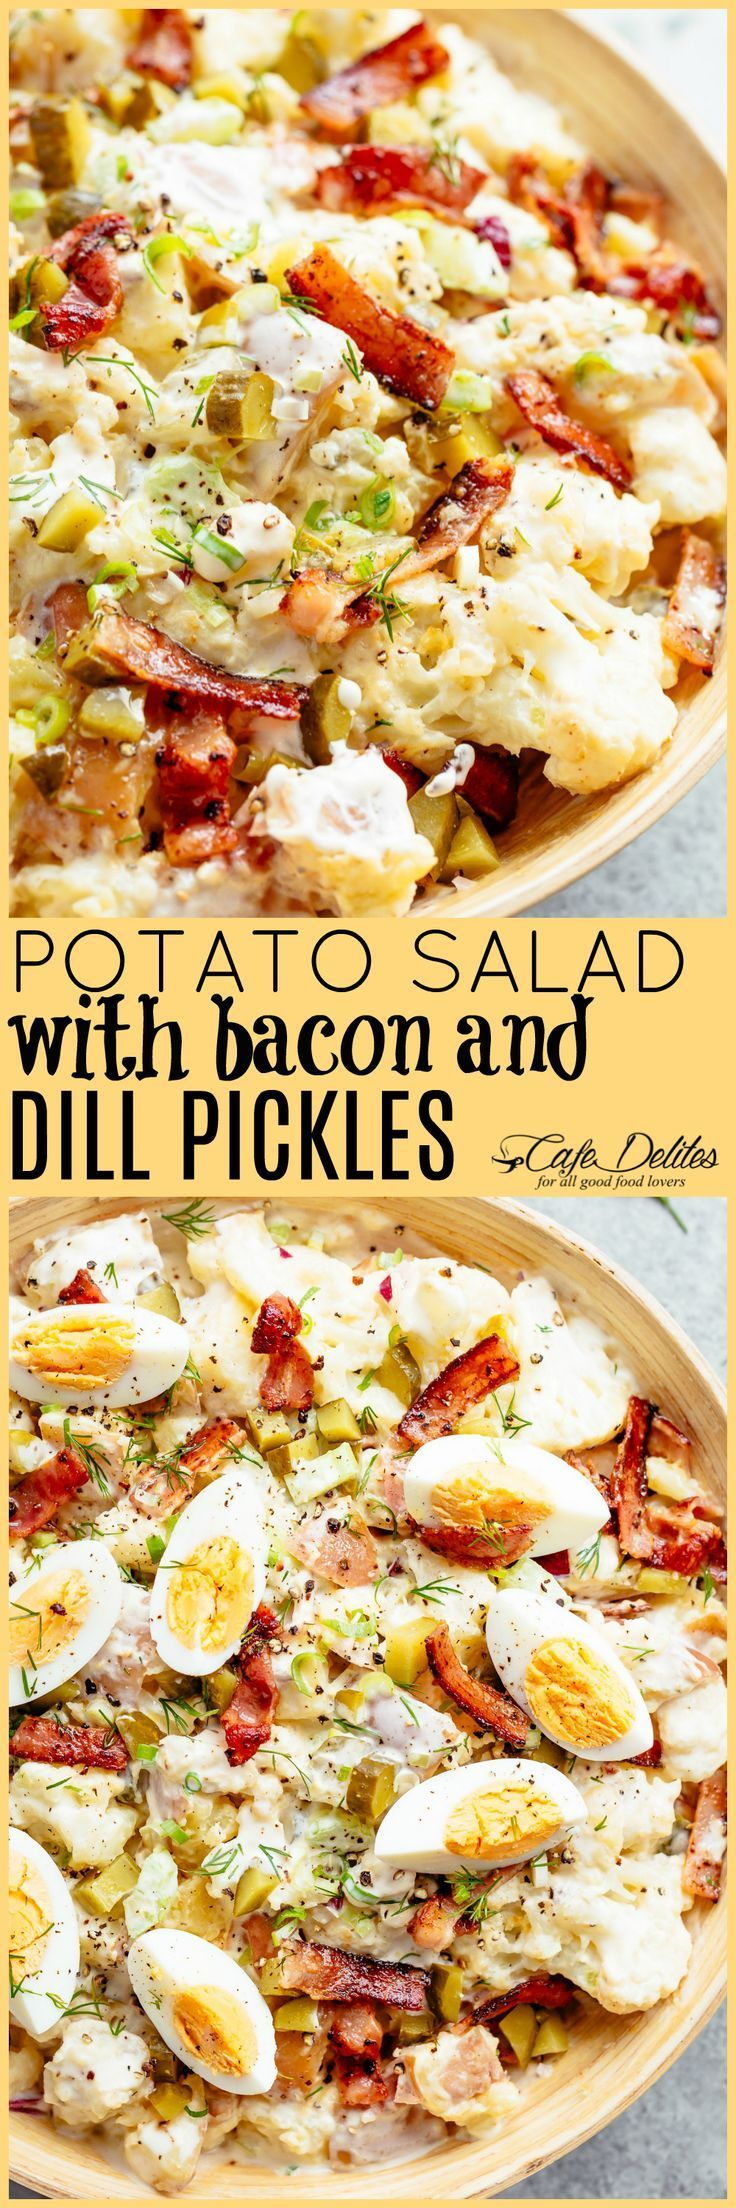 Best Potato Salad Recipe With Bacon And Dill